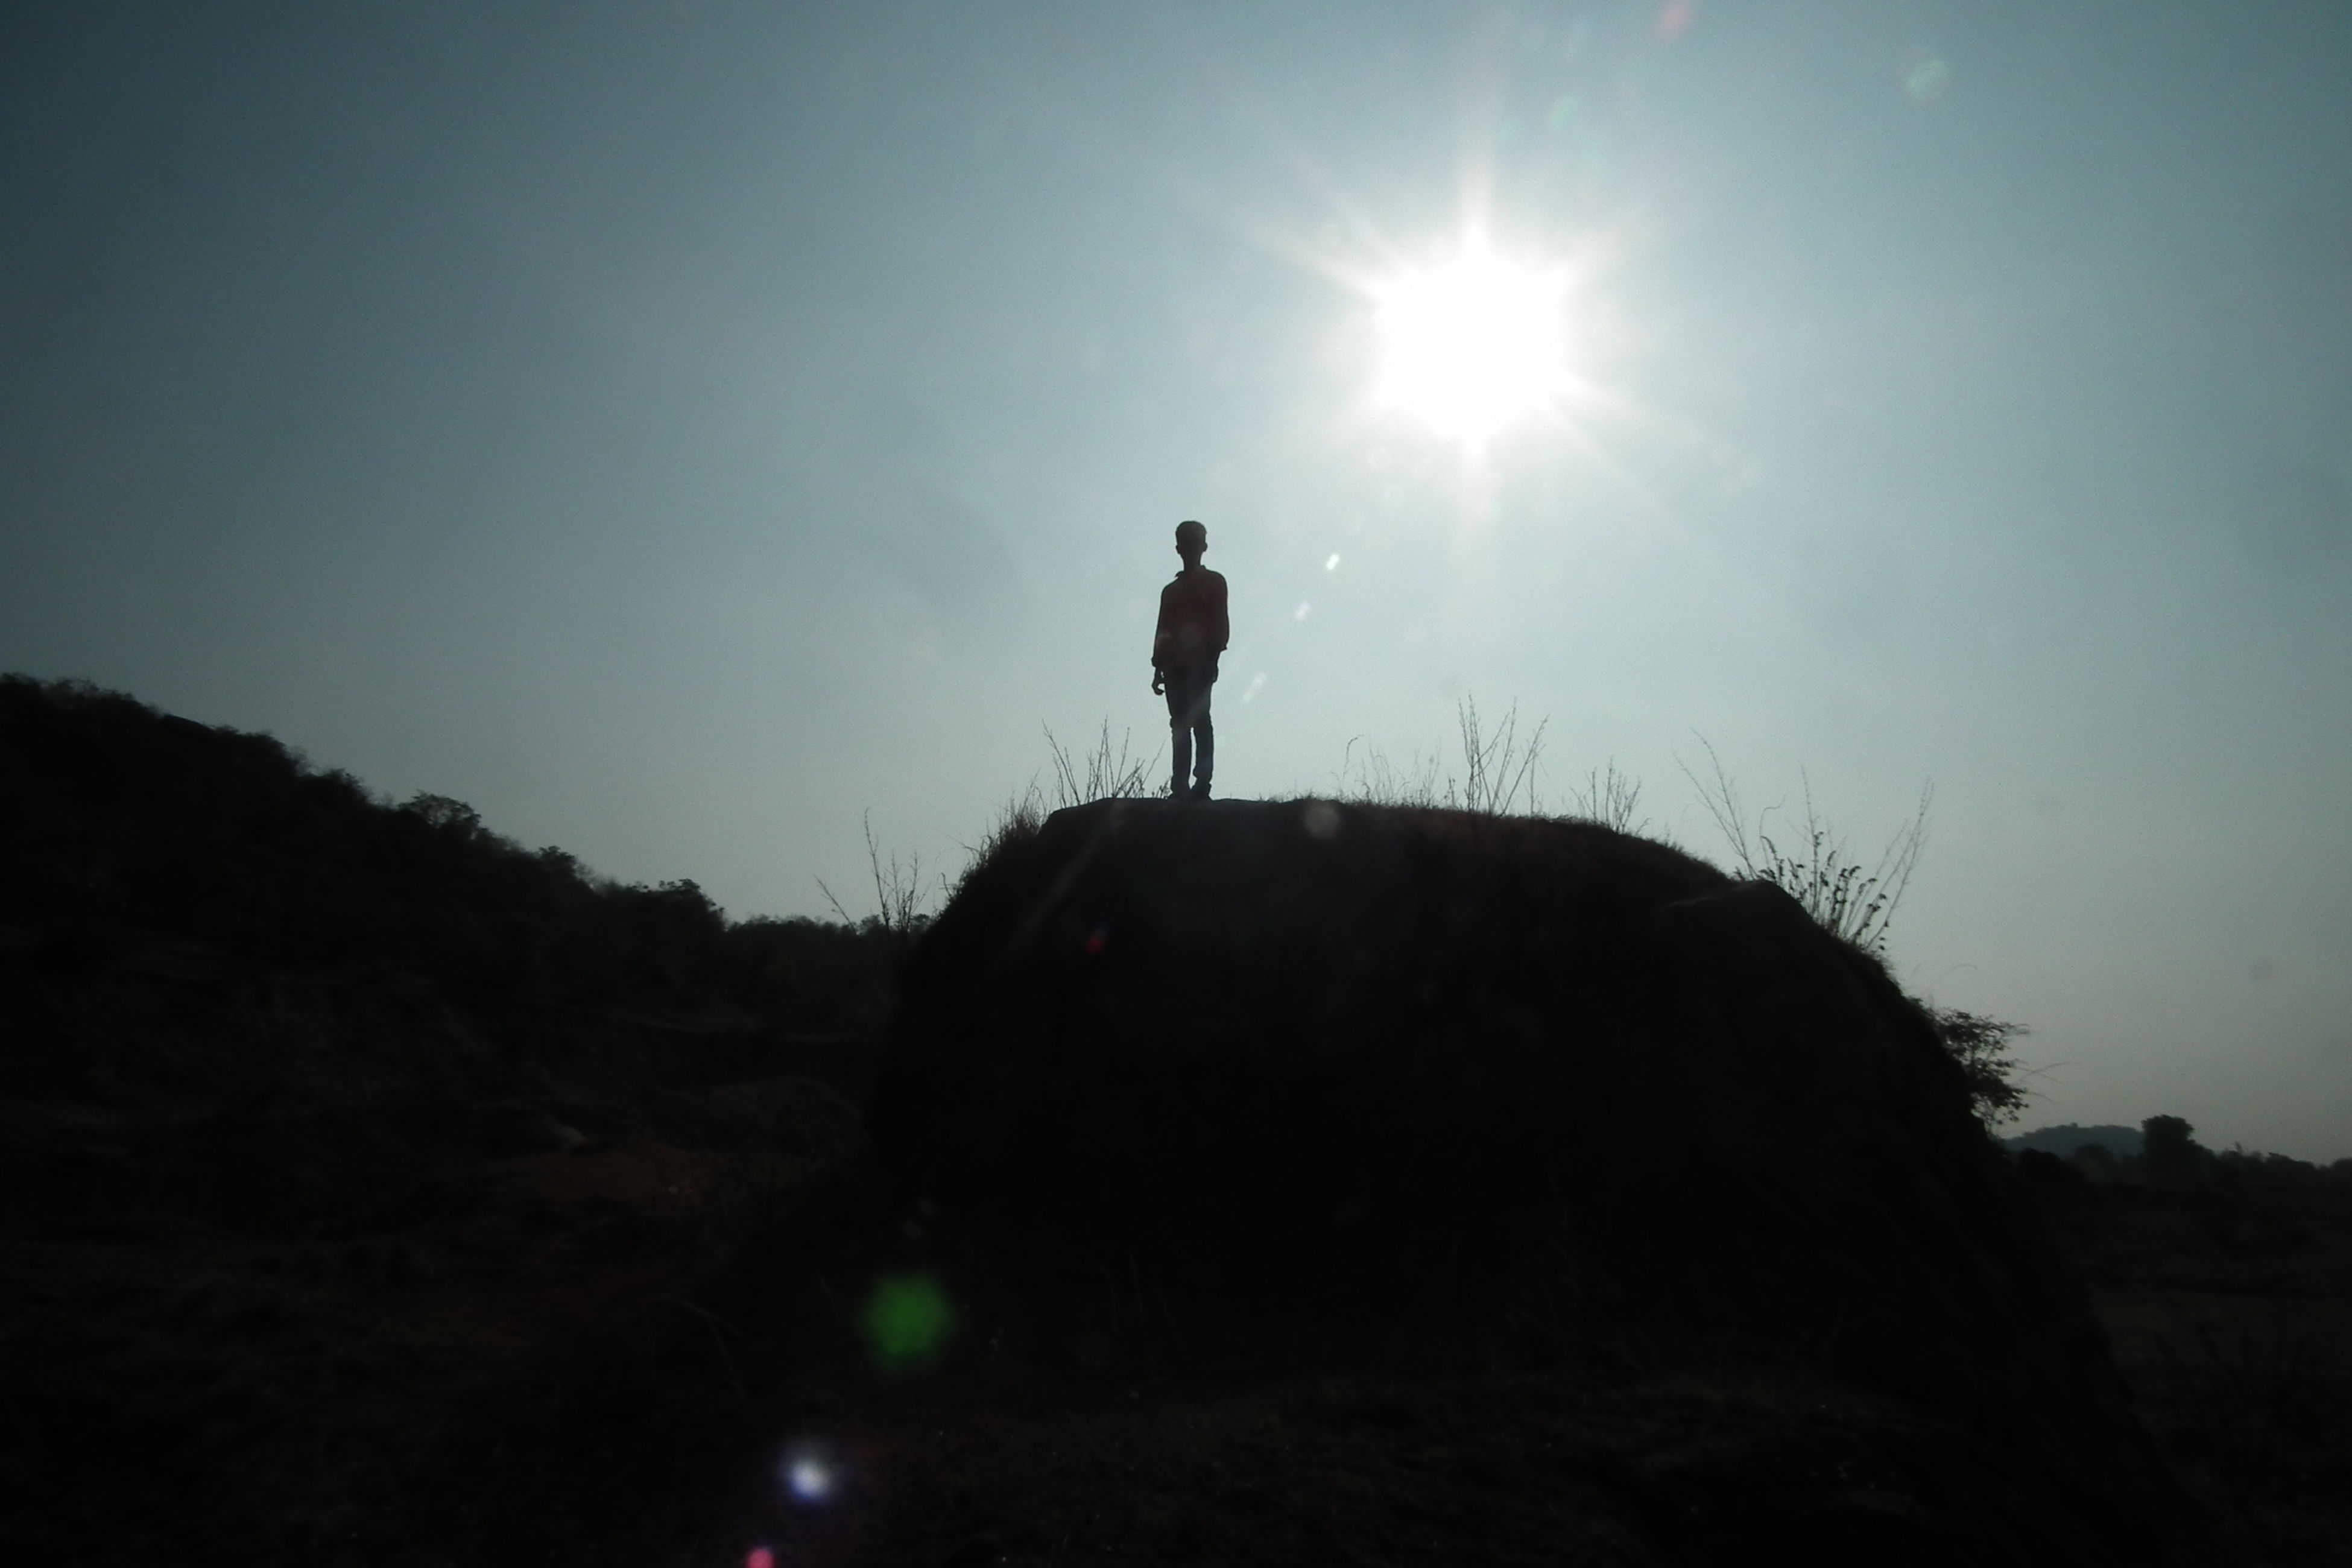 leisure activity, silhouette, real people, sun, standing, one person, full length, lifestyles, nature, outdoors, sky, mountain, day, beauty in nature, people, adult